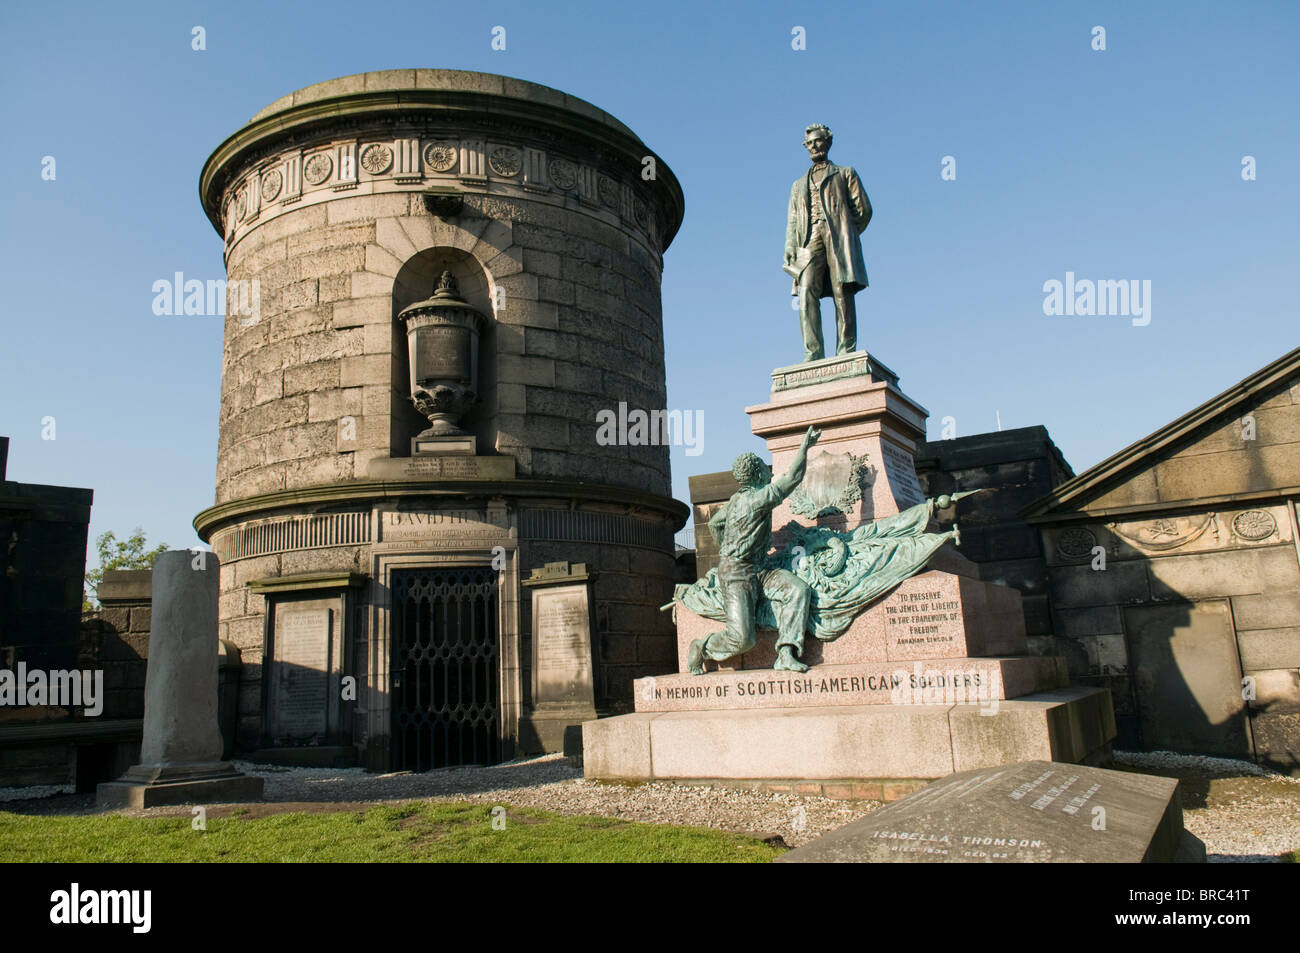 Statue of Abraham Lincoln atop memorial to Scottish - American soldiers, in the Calton Cemetery, Edinburgh. Stock Photo